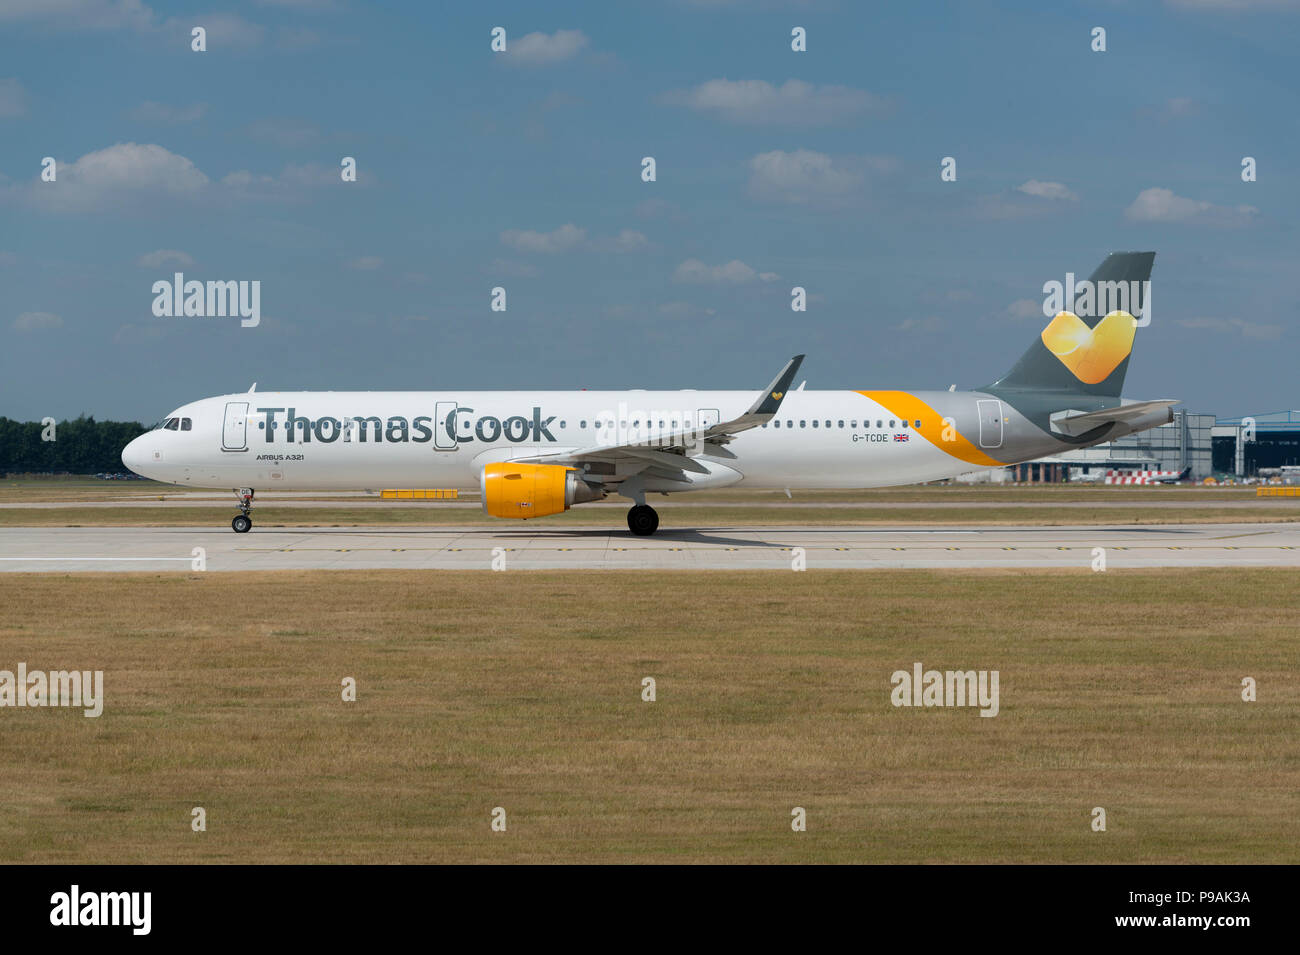 A Thomas Cook Airbus A321-211 sits on the runway at Manchester Airport as it prepares to take-off. - Stock Image